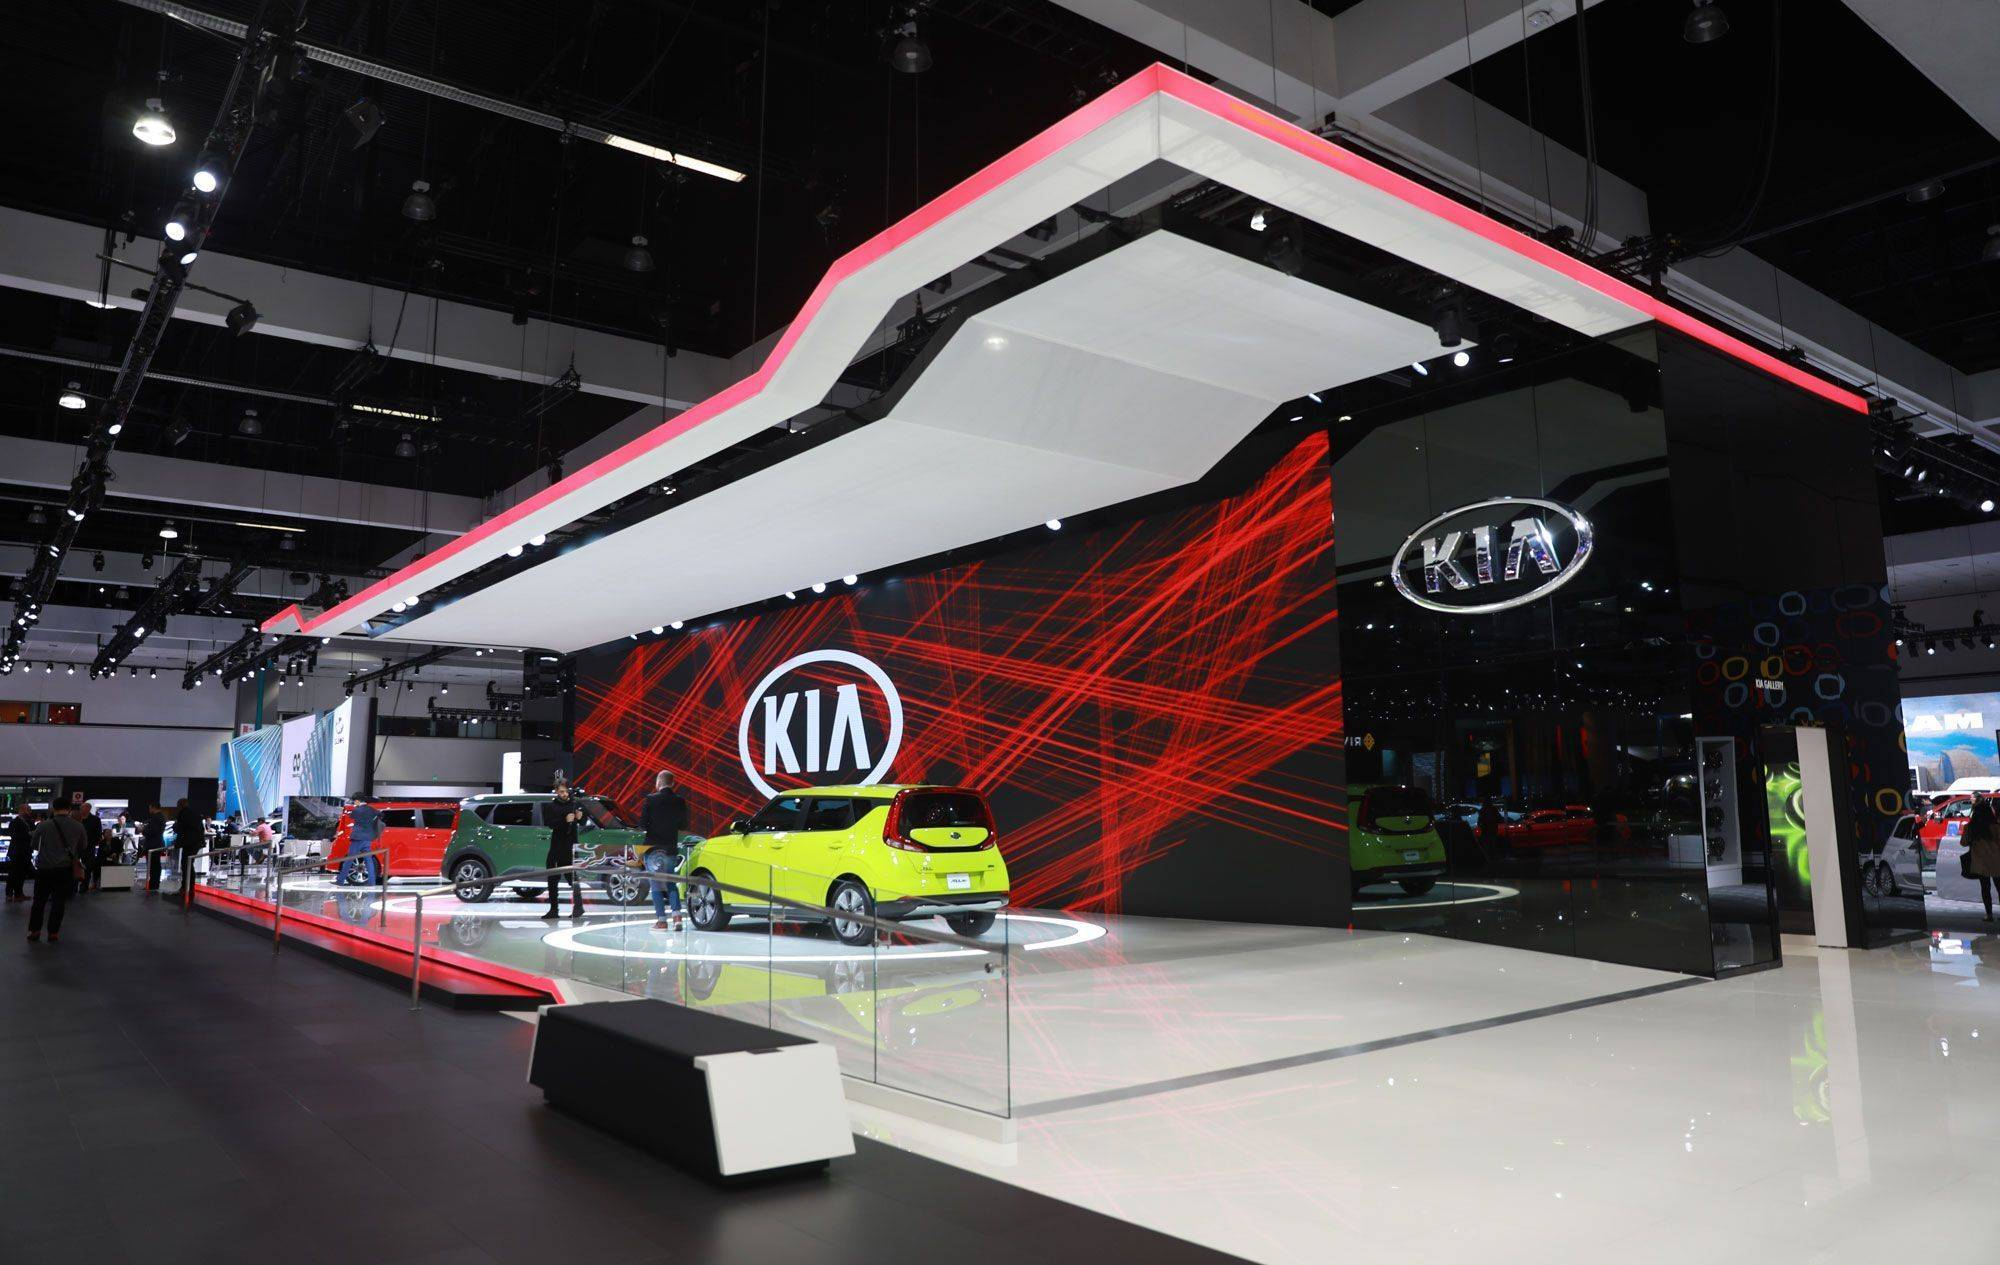 Prolyte's Verto Truss used at LA Auto Show